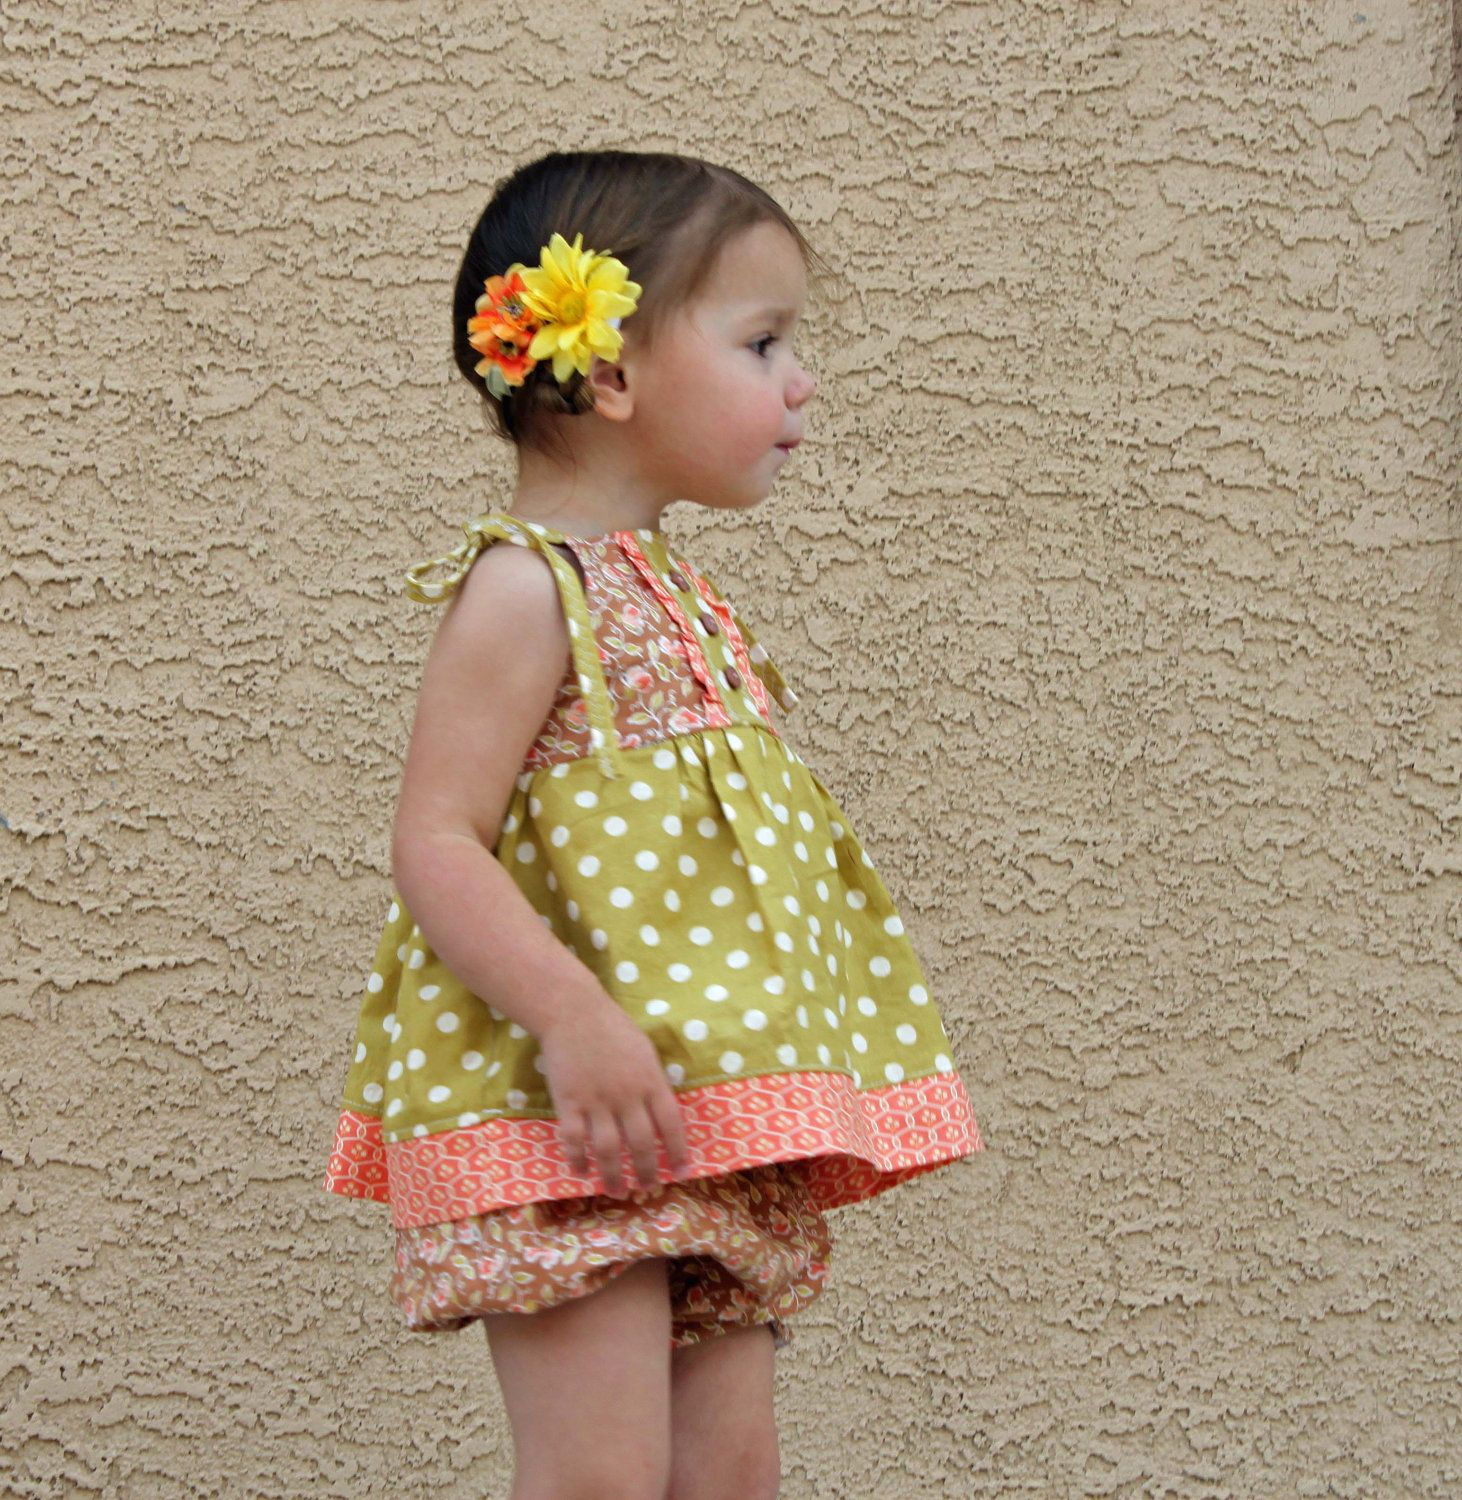 Girl's Picnic Apron Dress or Top clothes sewing tutorial PDF